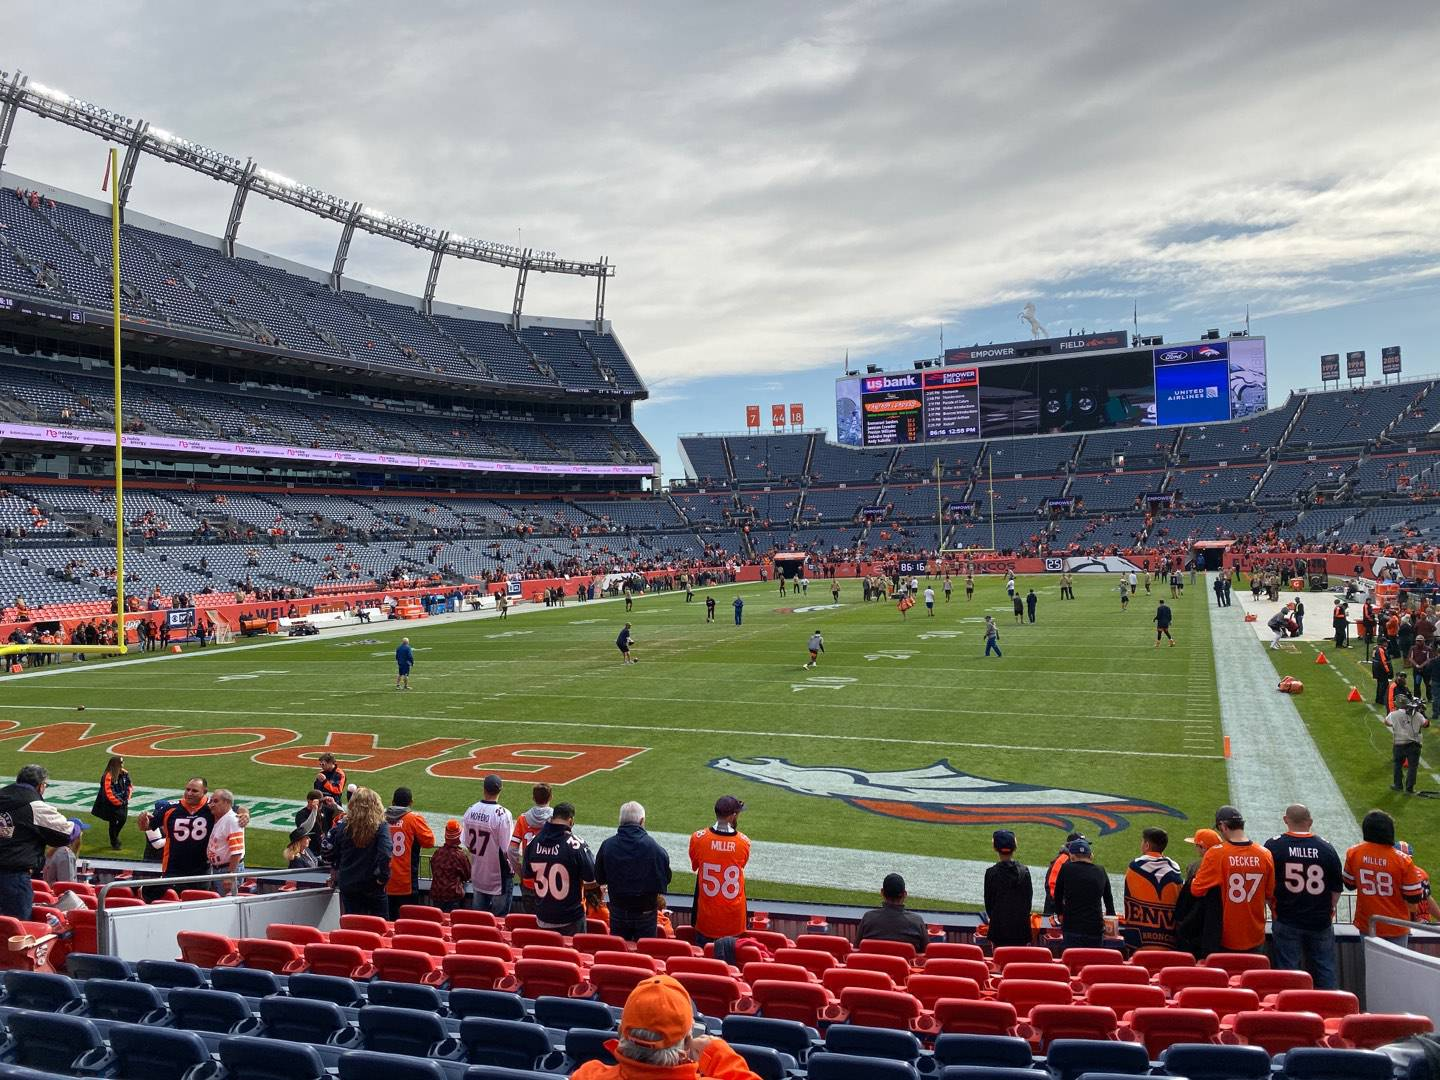 Empower Field at Mile High Stadium Section 112 Row 12 Seat 6